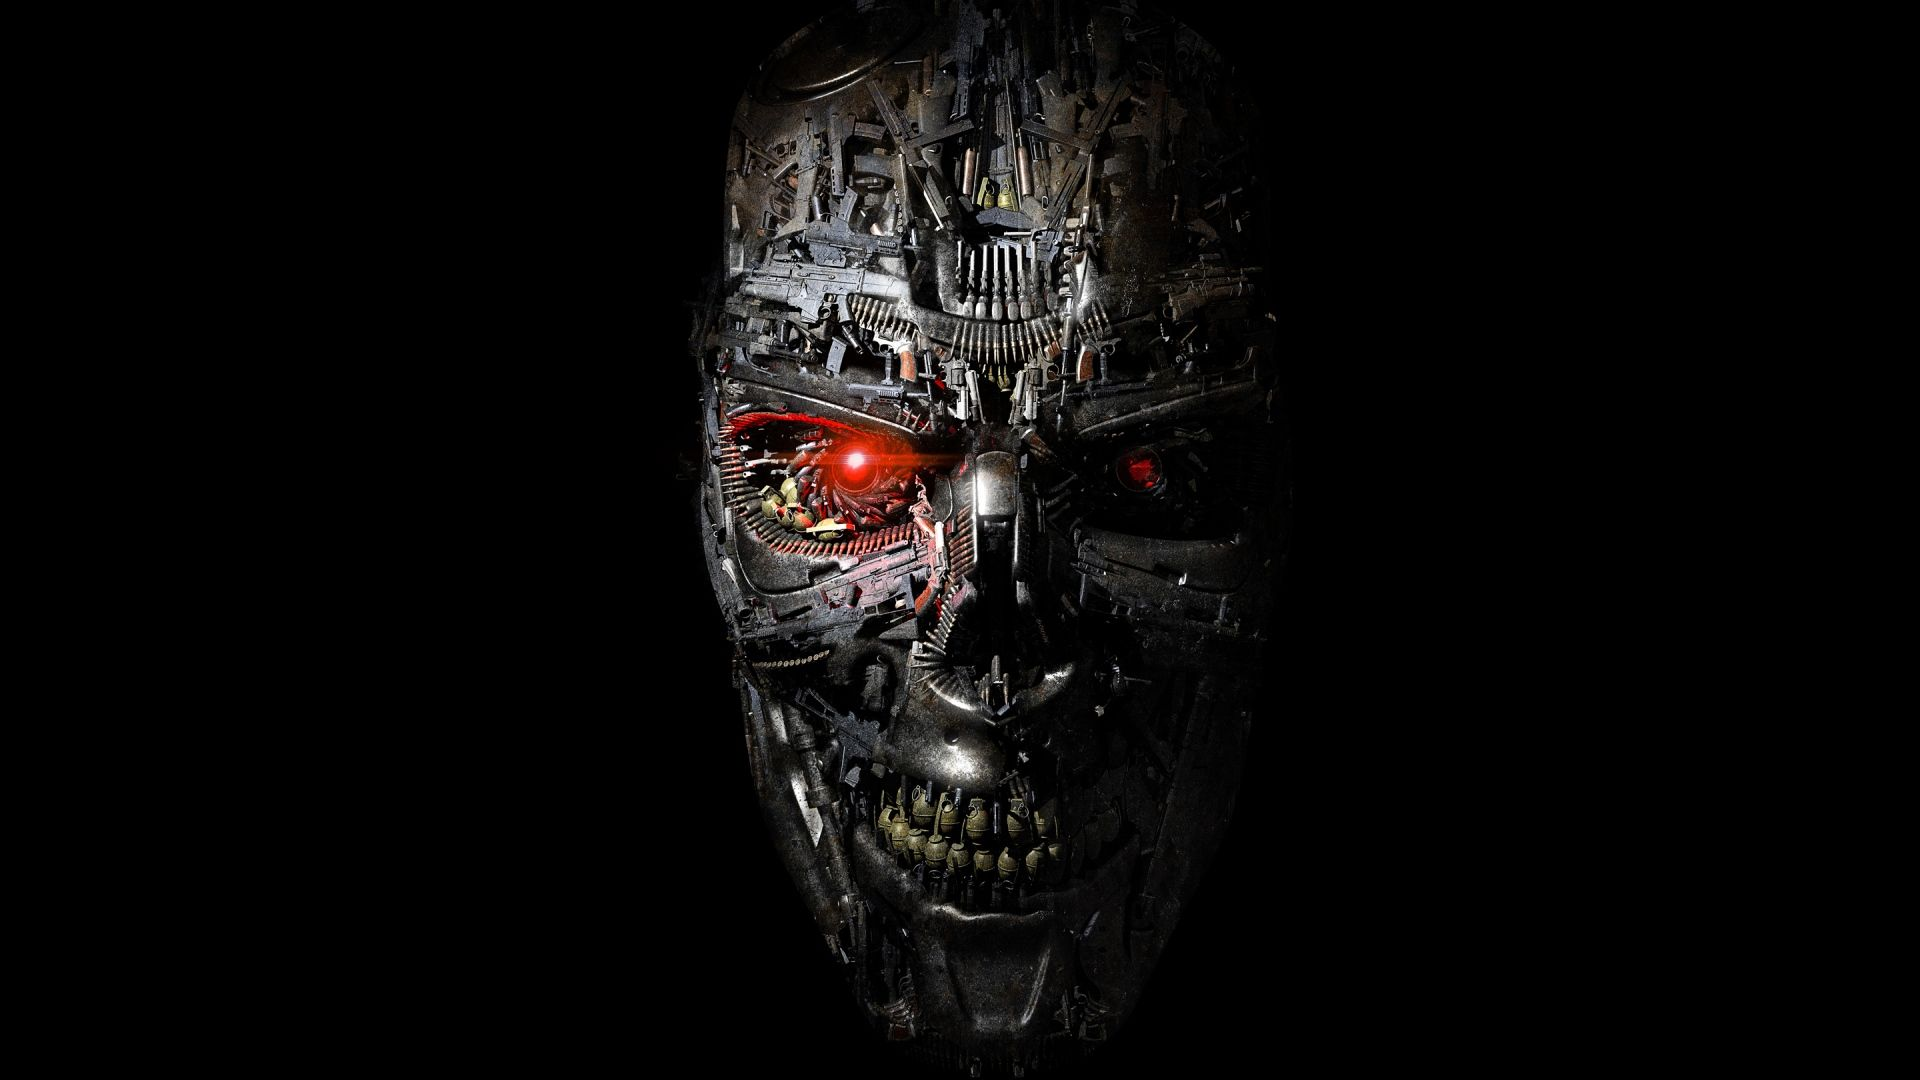 Full Hd 1080p Terminator Wallpapers Hd Desktop Backgrounds Robot Wallpaper Black Art Painting 4k Wallpaper For Mobile